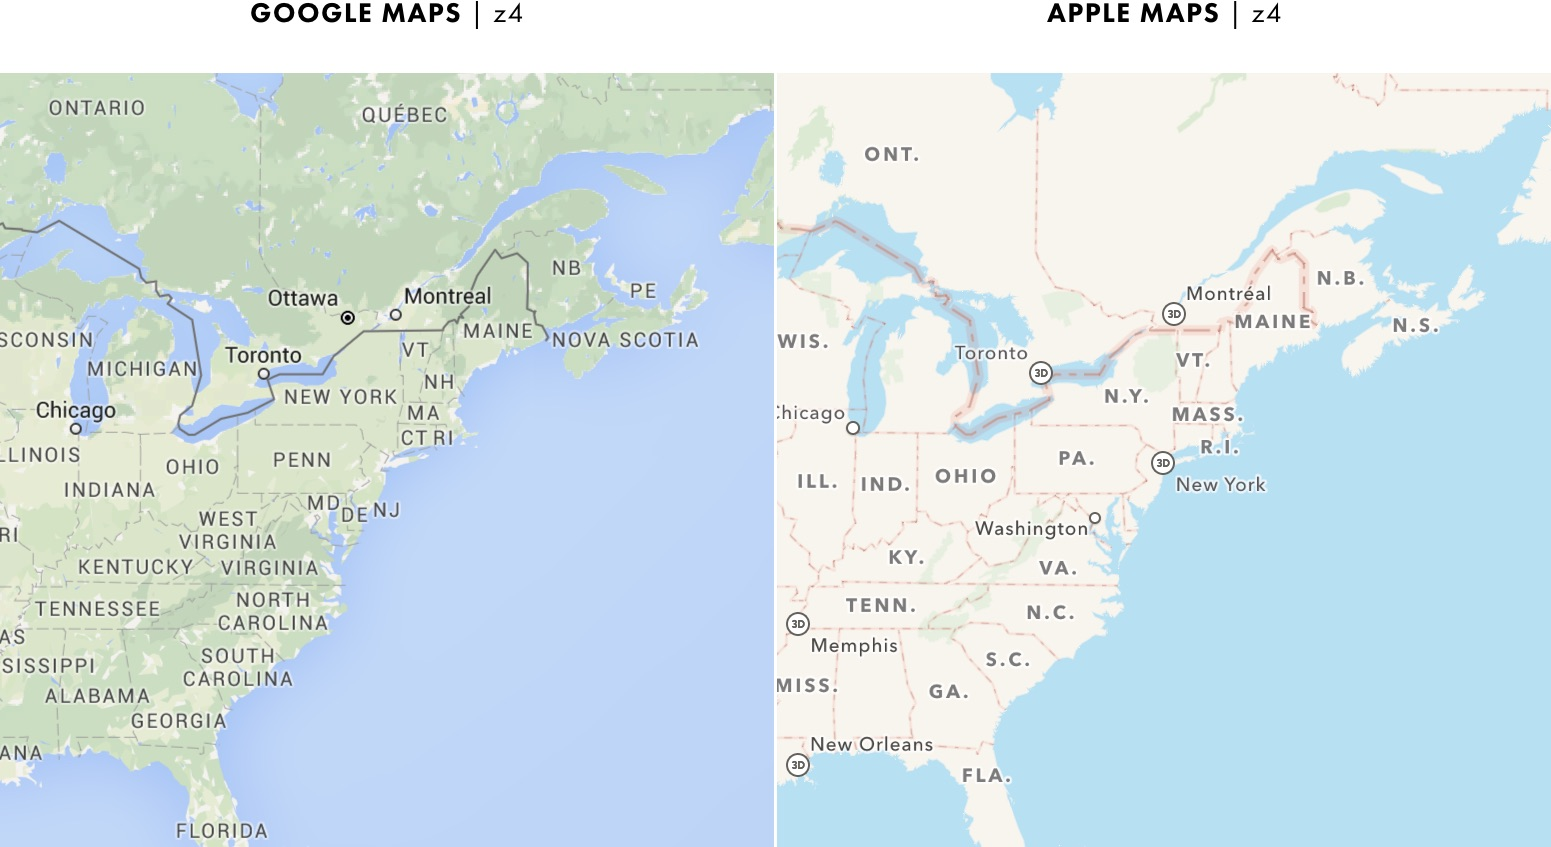 Google Map Of Canada And Provinces.Cartography Comparison Part 2